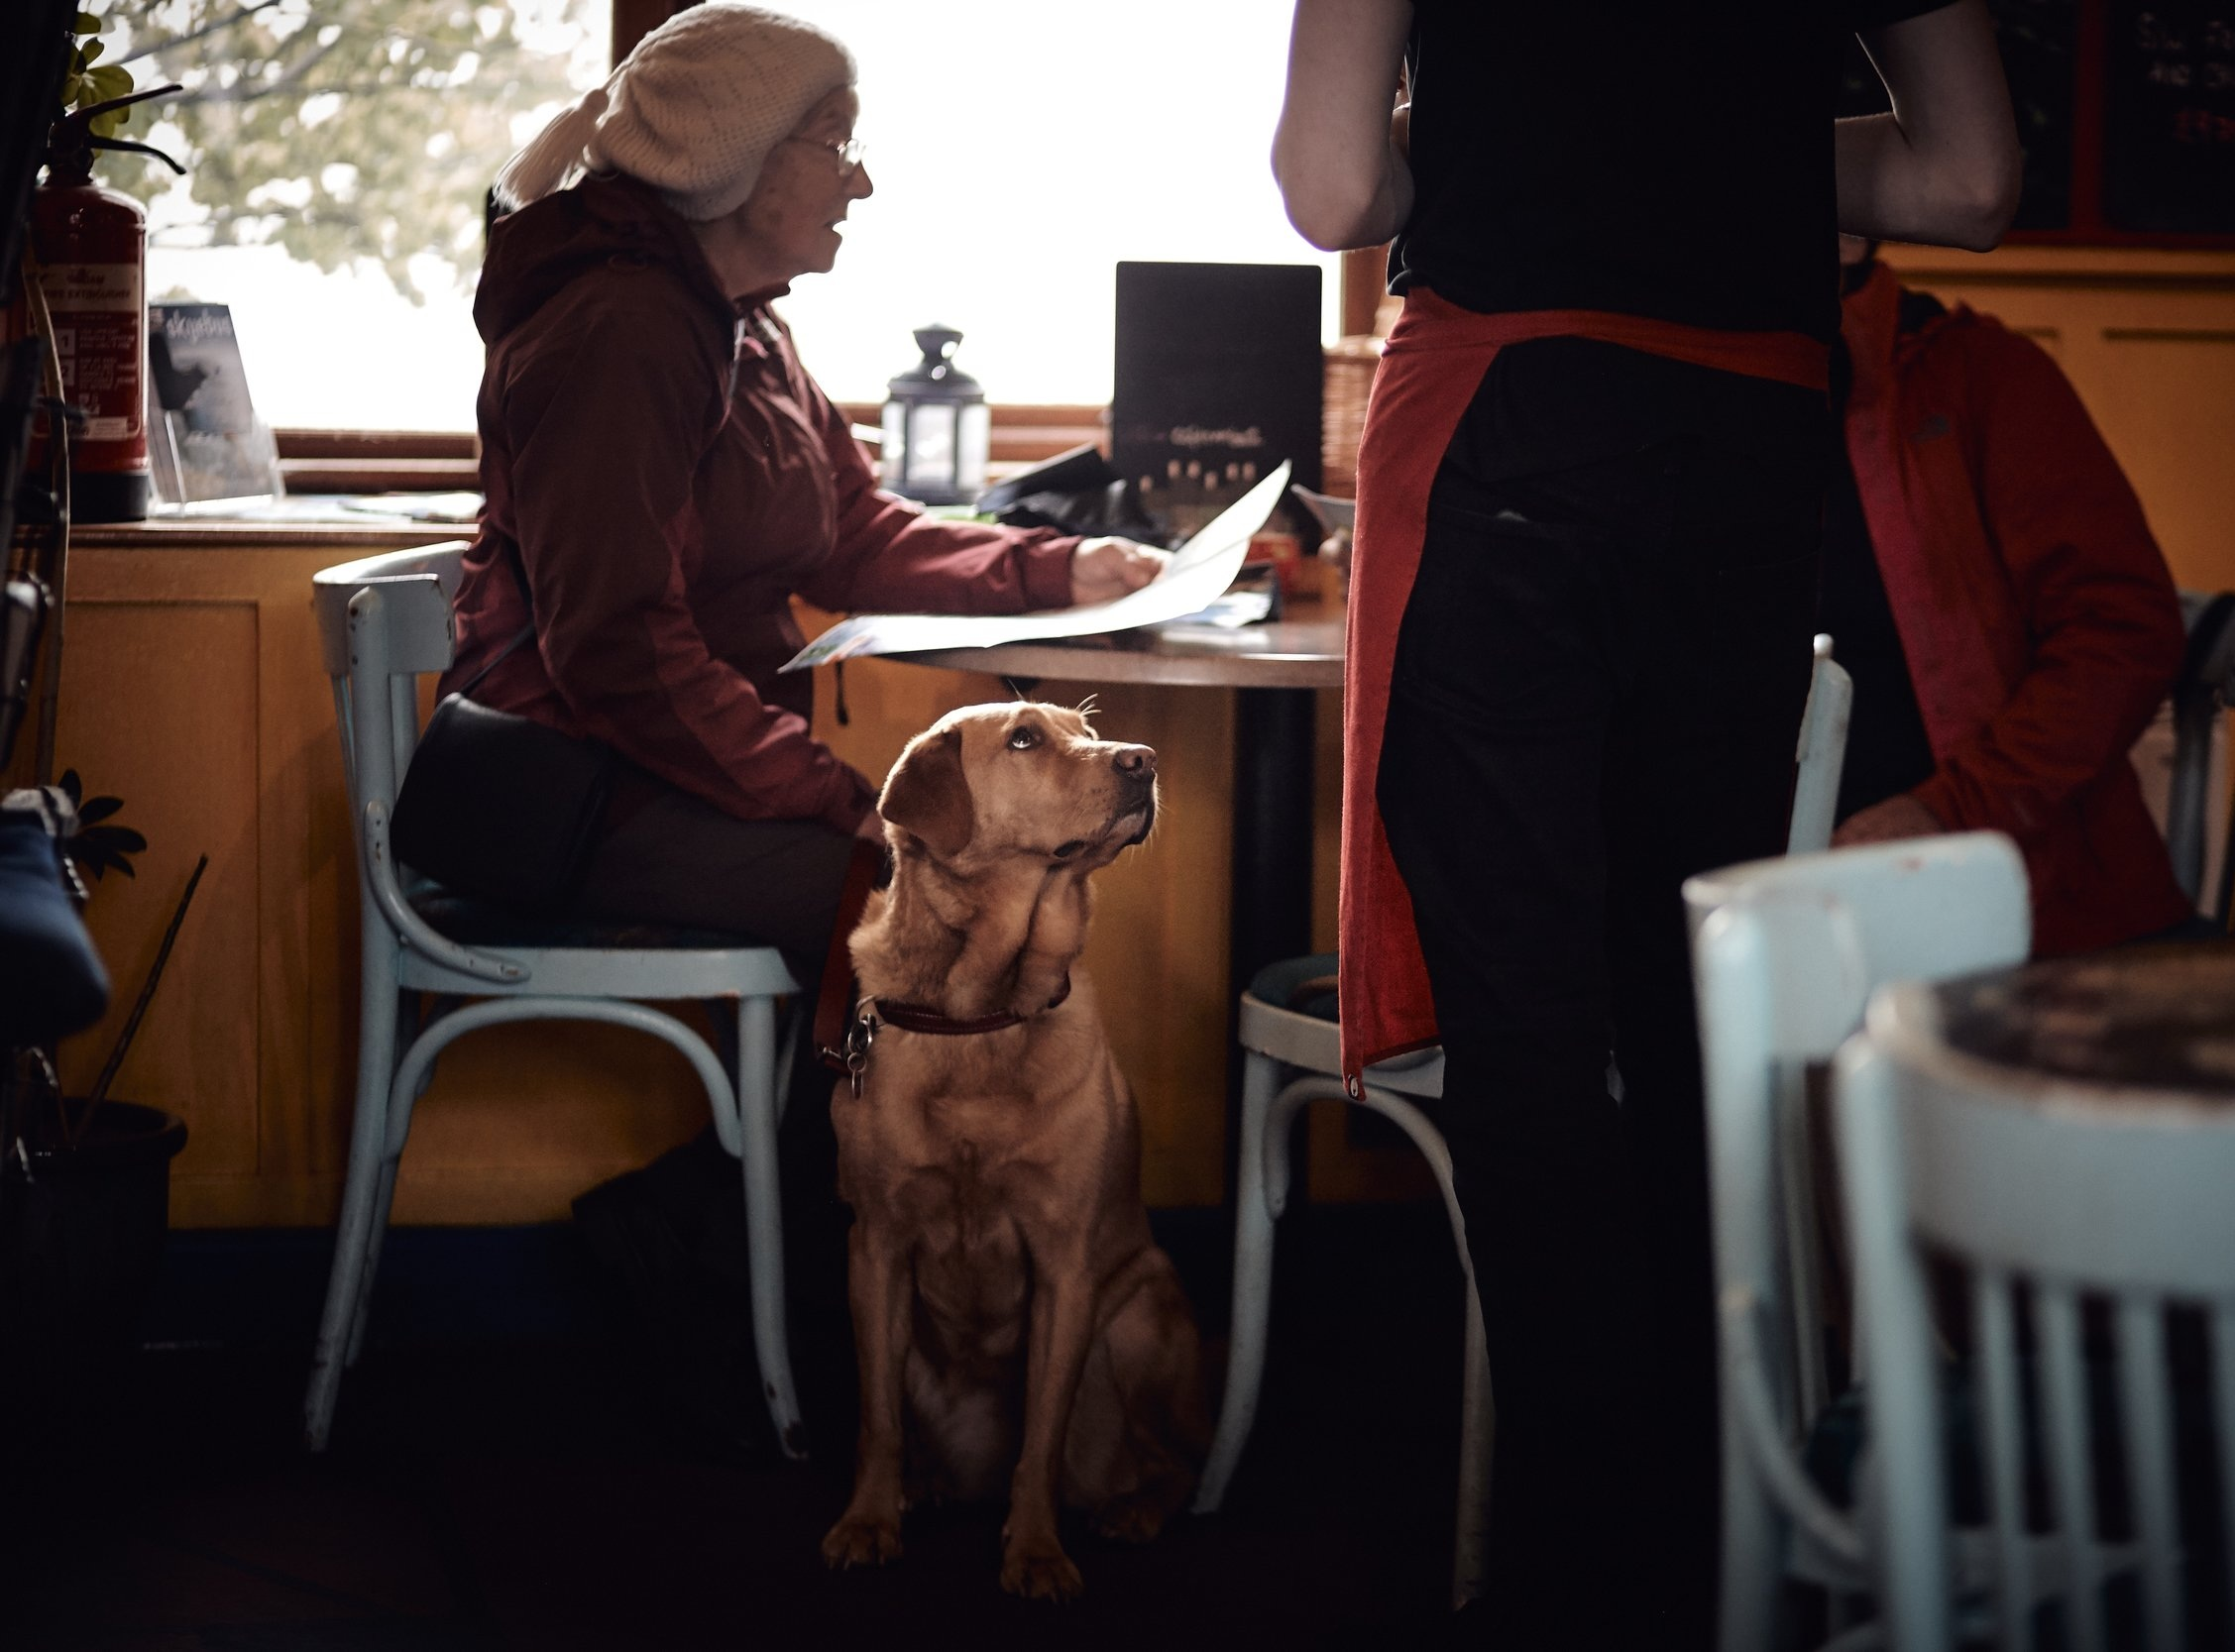 Dogs - As a family business we know how dogs are an additional member which is why we allow dogs in all of our stores; they can enjoy the Filmore experience too.